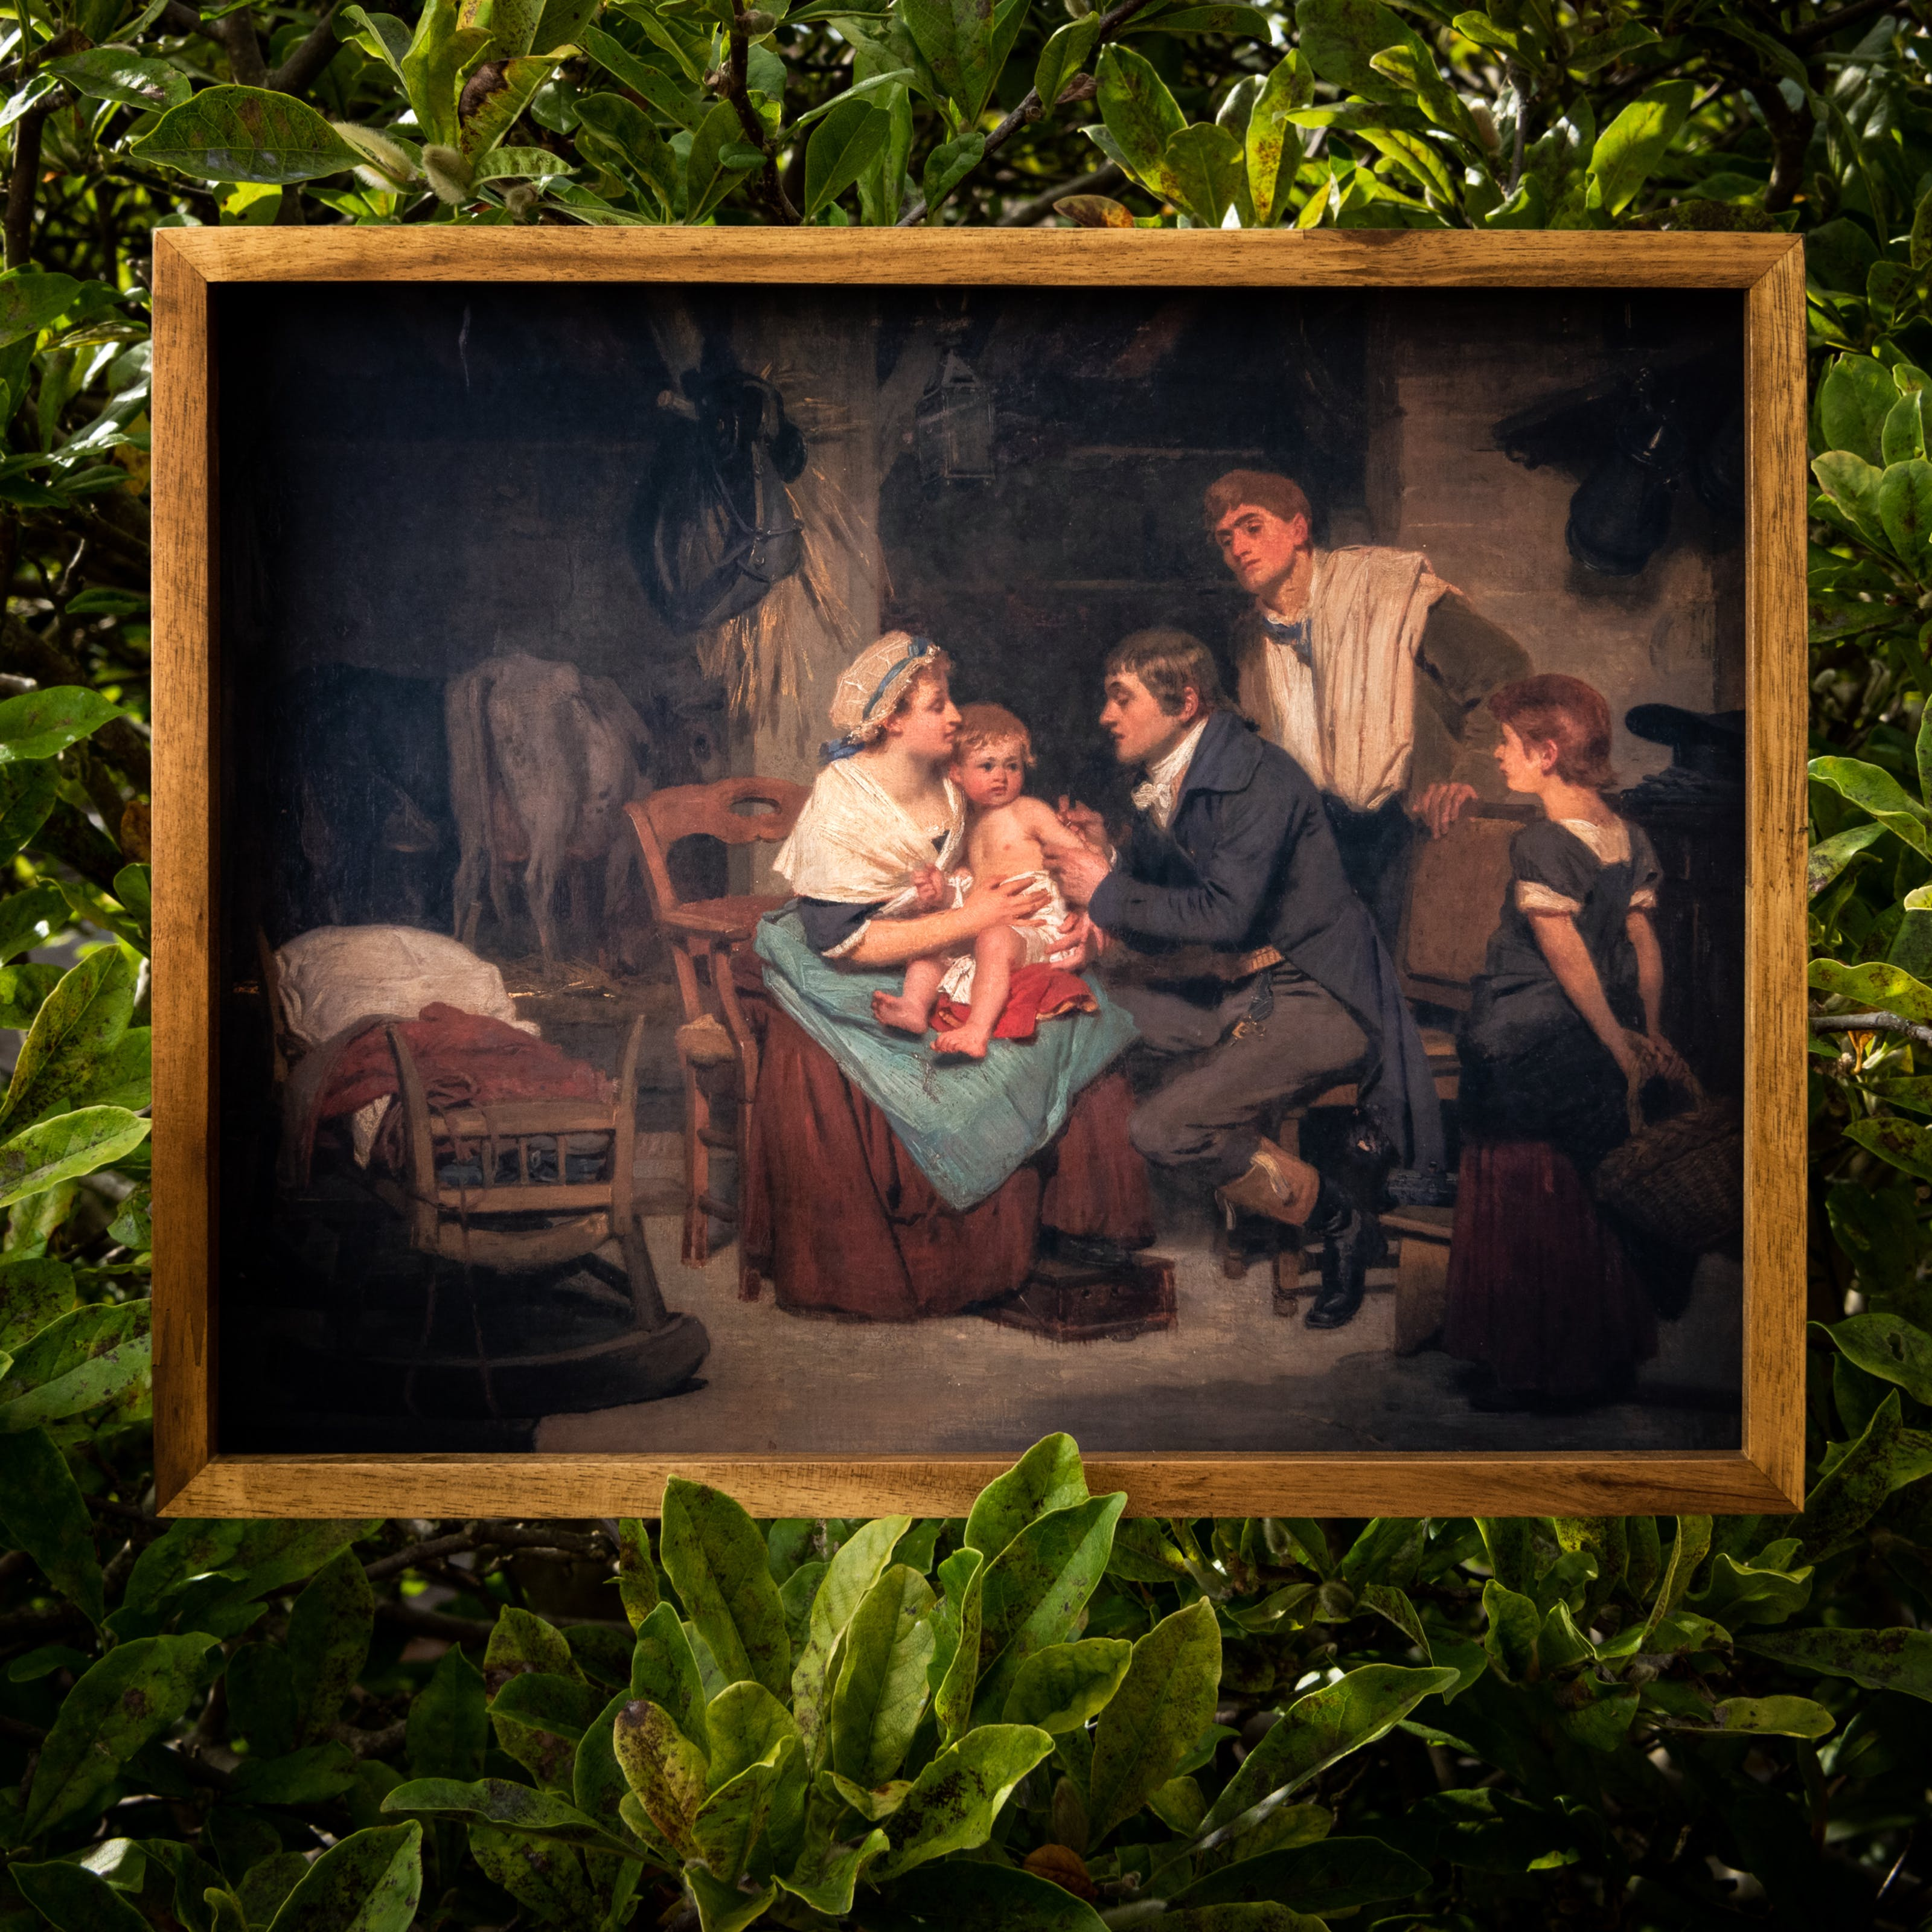 Photograph of a facsimile of an oil painting in a thin wooden frame, hung within the large green leaf foliage of a bush. The oil painting depicts a scene where a man is giving a small child a vaccination. The child is sat on it's mother's knee and the older sister and father figures look on. The scene is set in the 18th century.